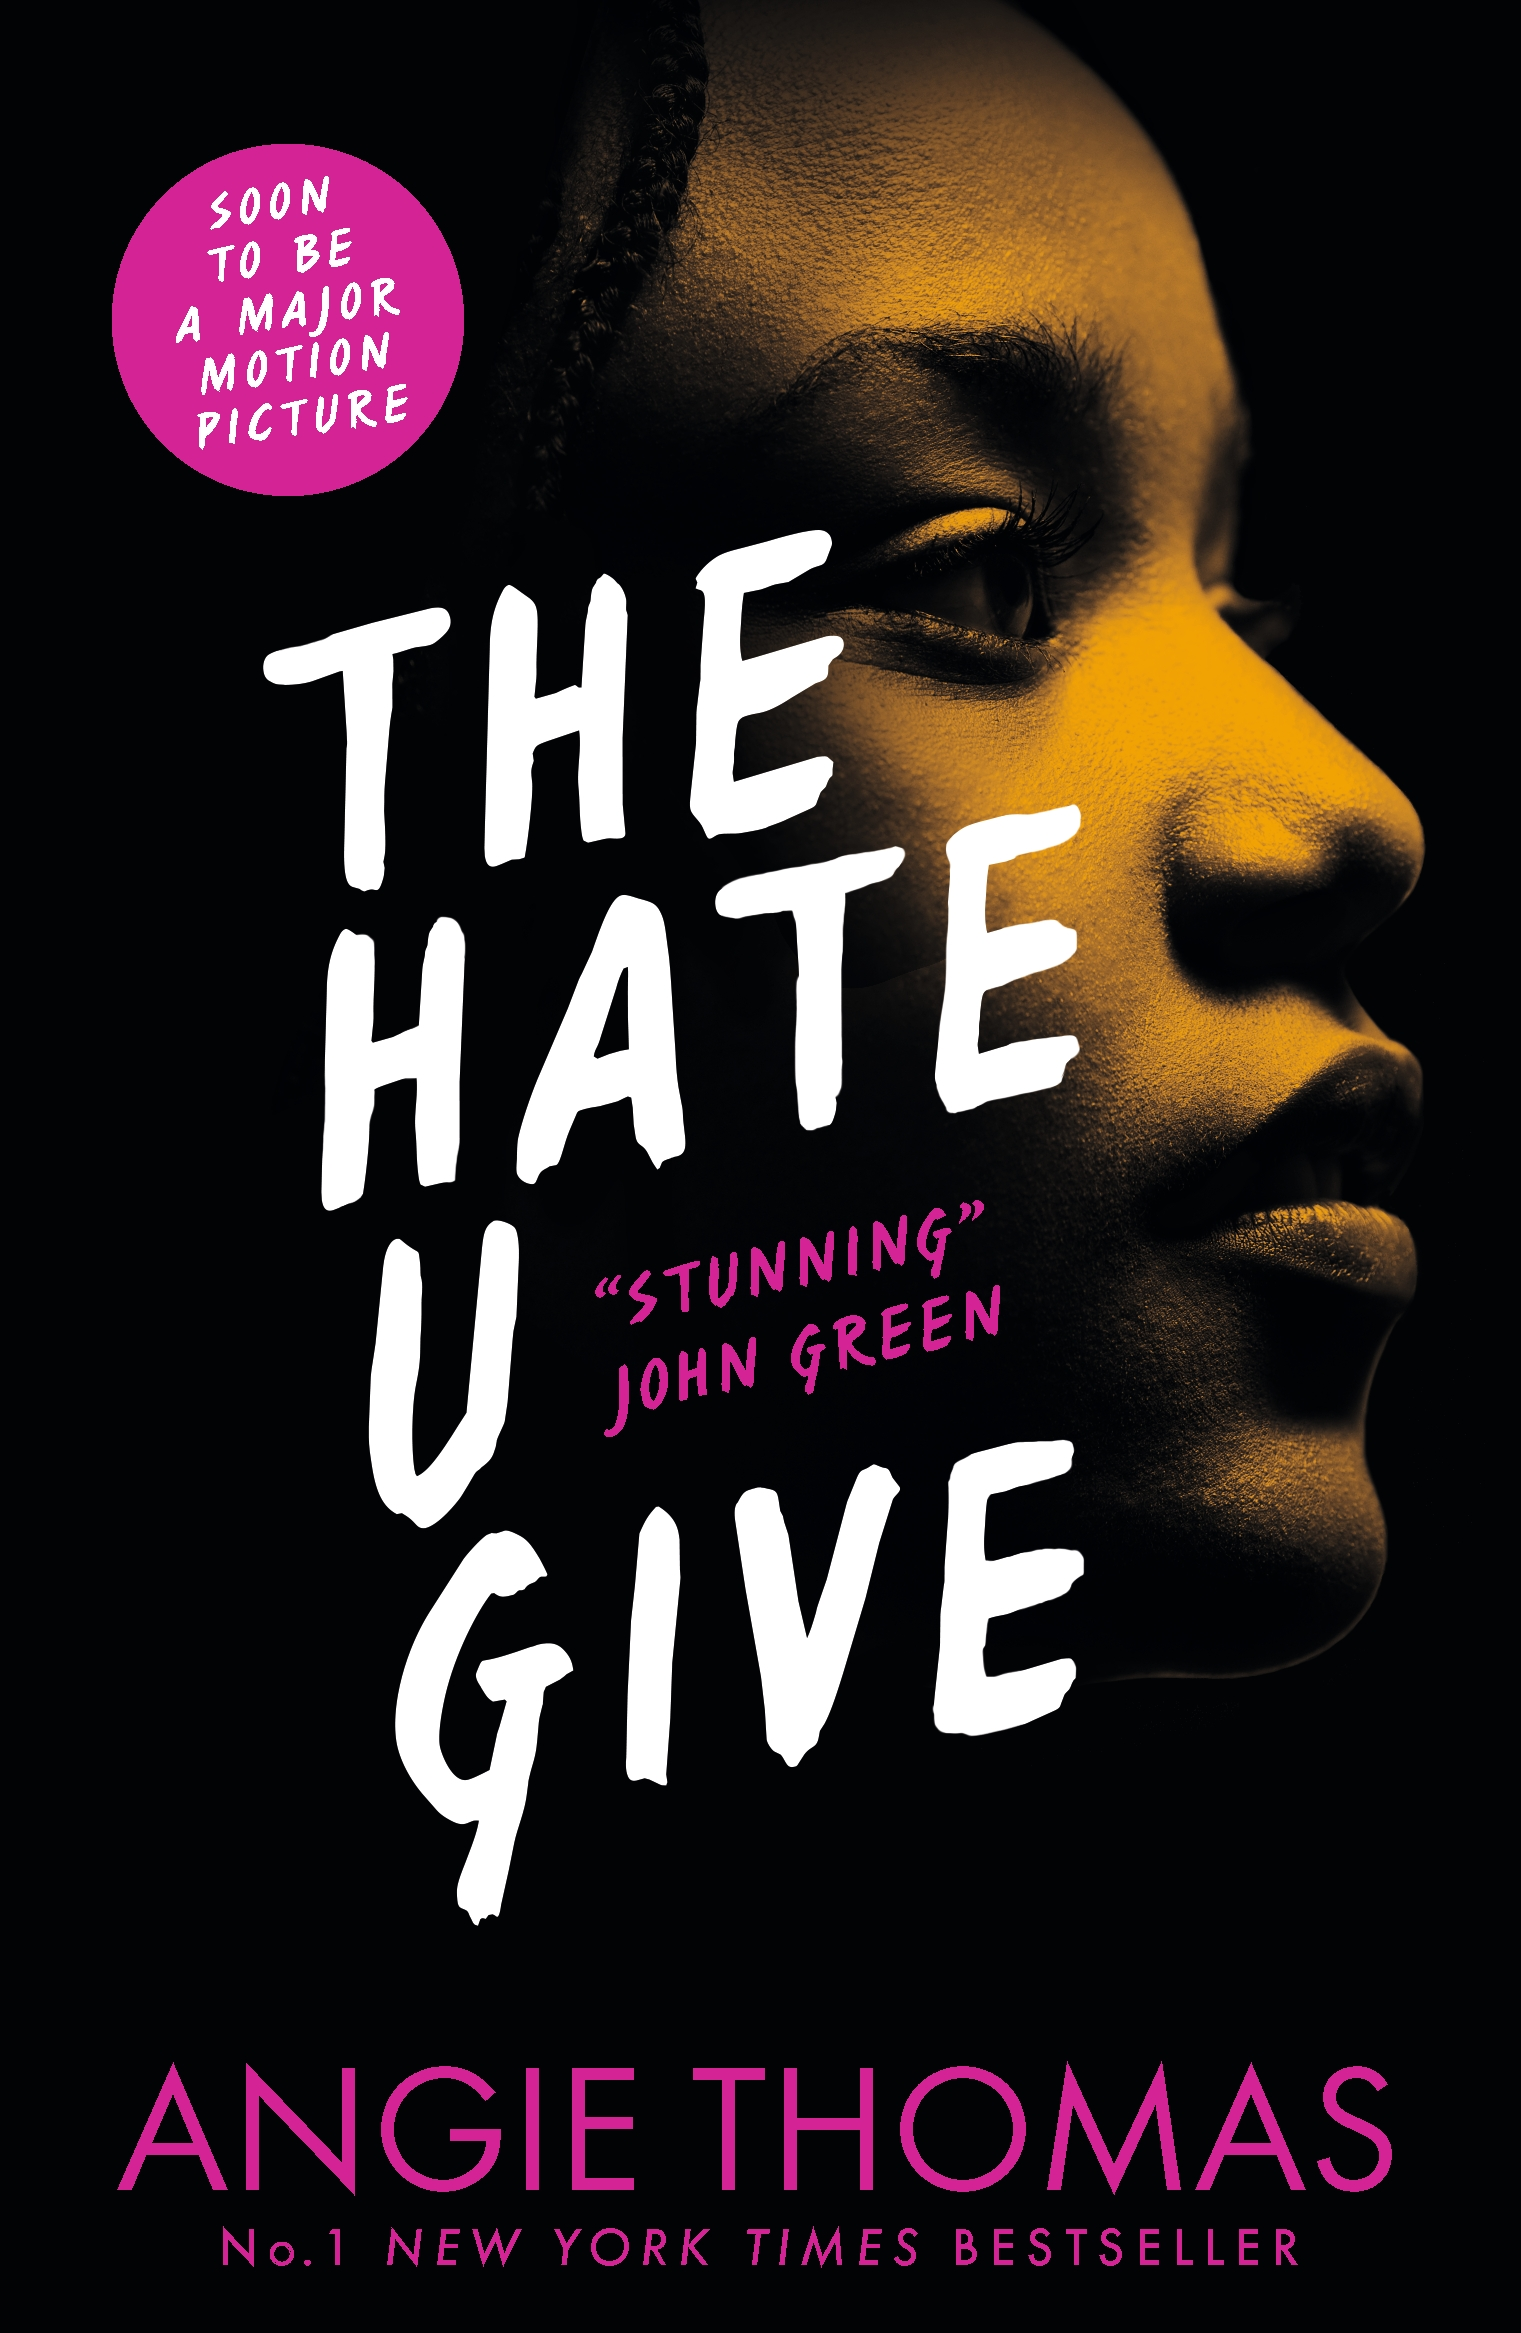 The Hate You Give (Angie Thomas)